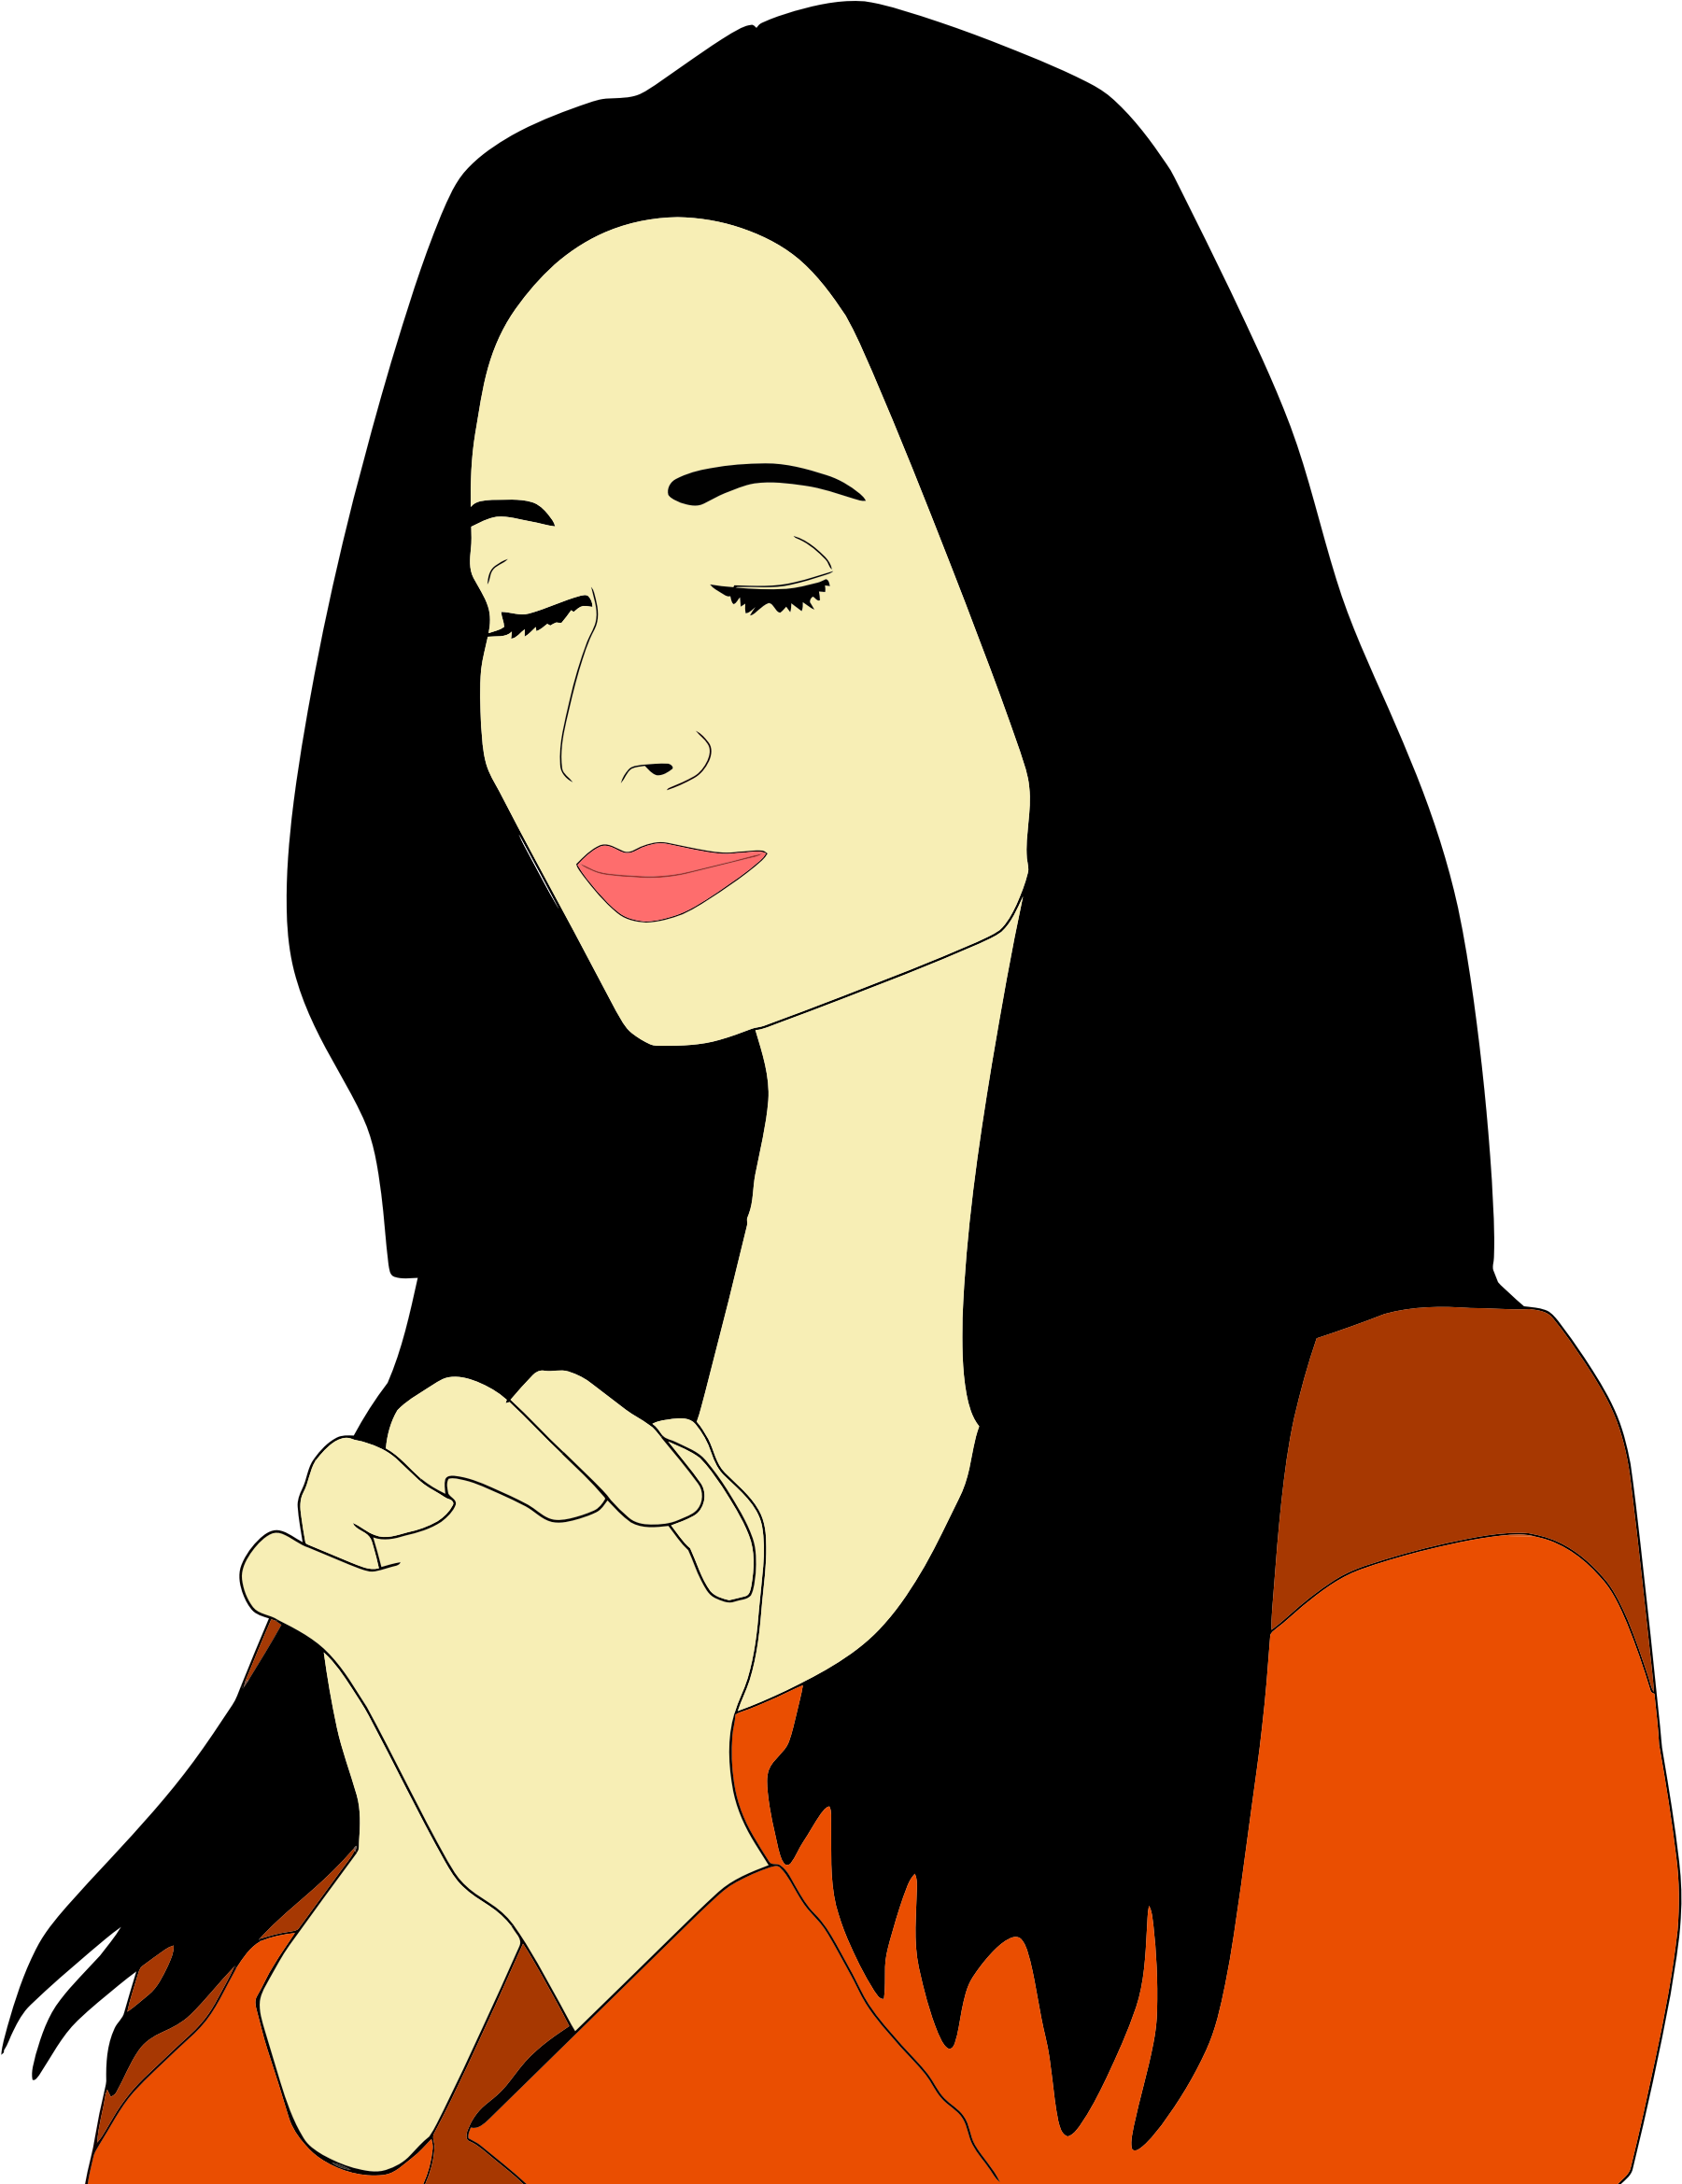 clip library library Silhouette Woman Praying at GetDrawings